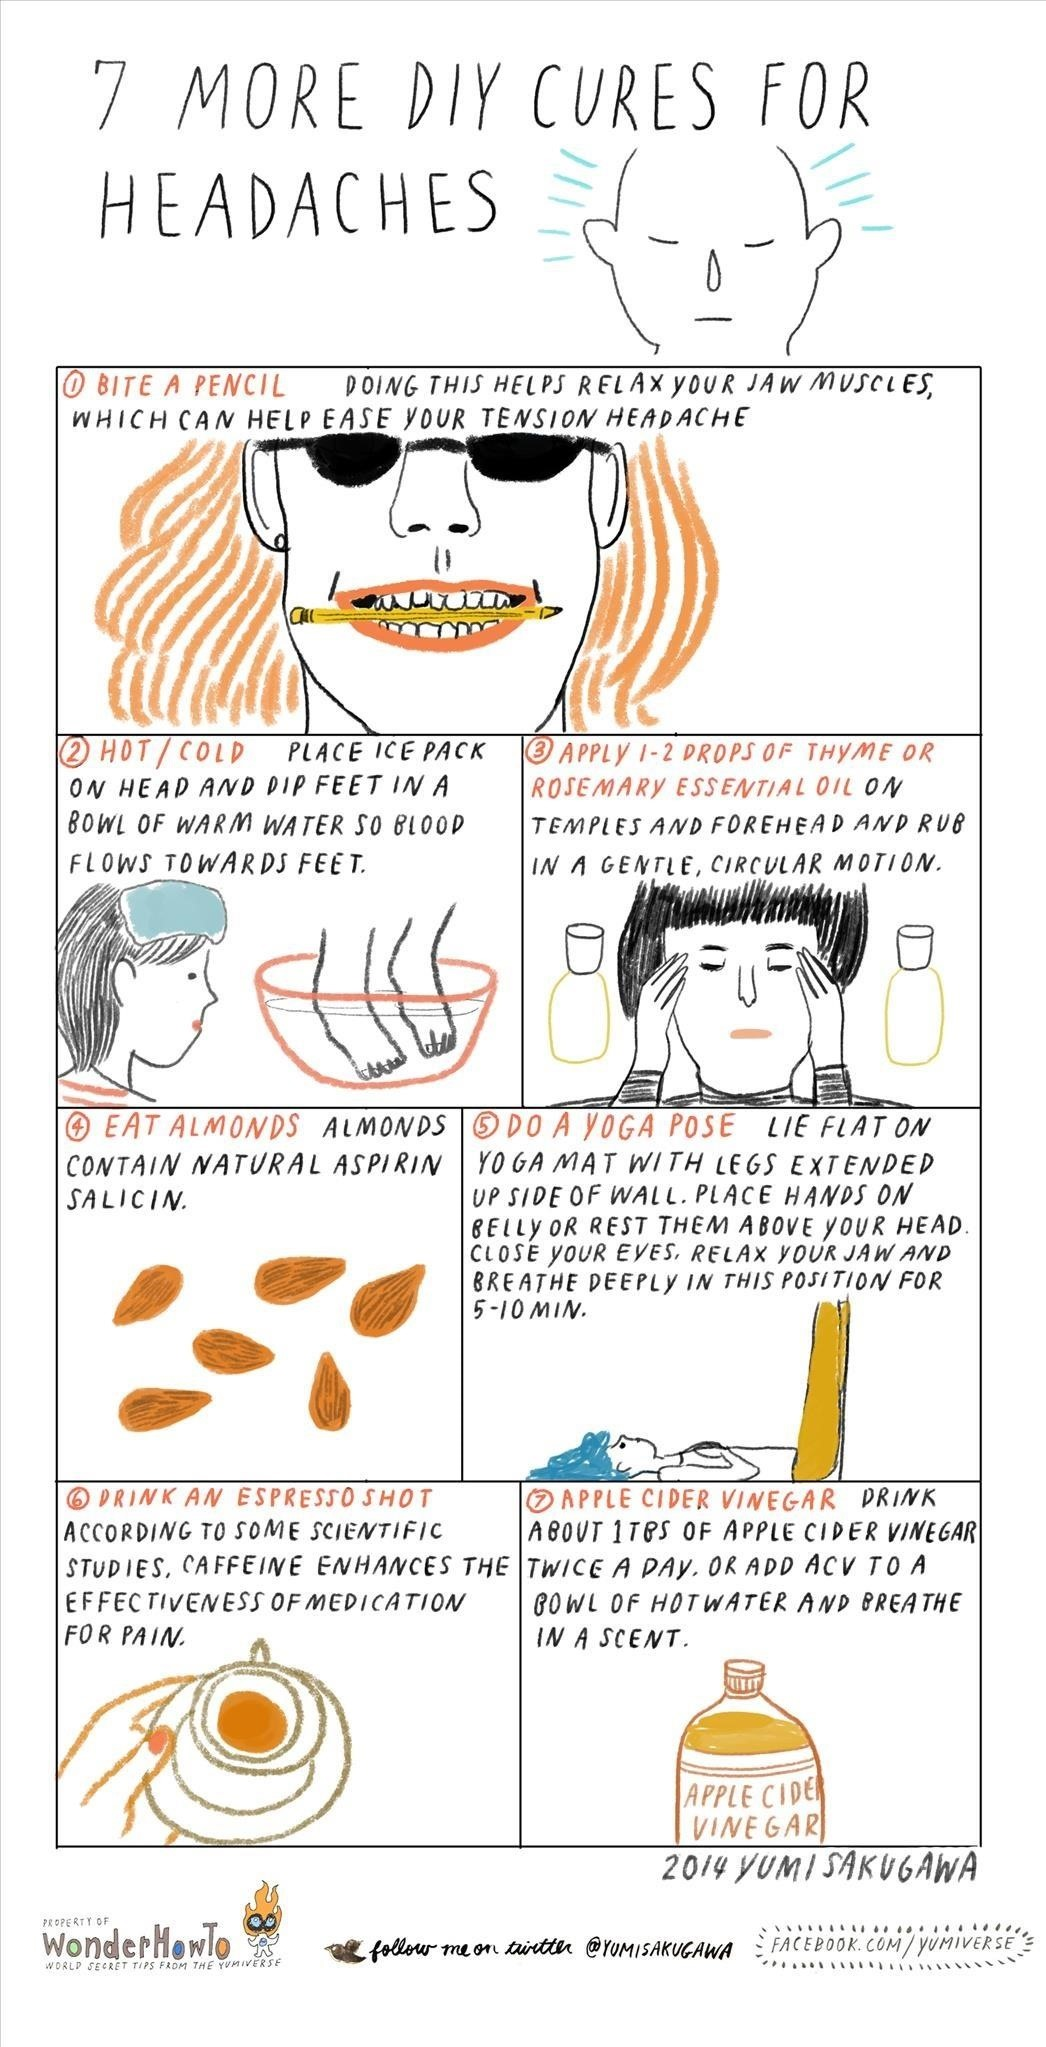 7 more diy cures for headaches « the secret yumiverse :: wonderhowto